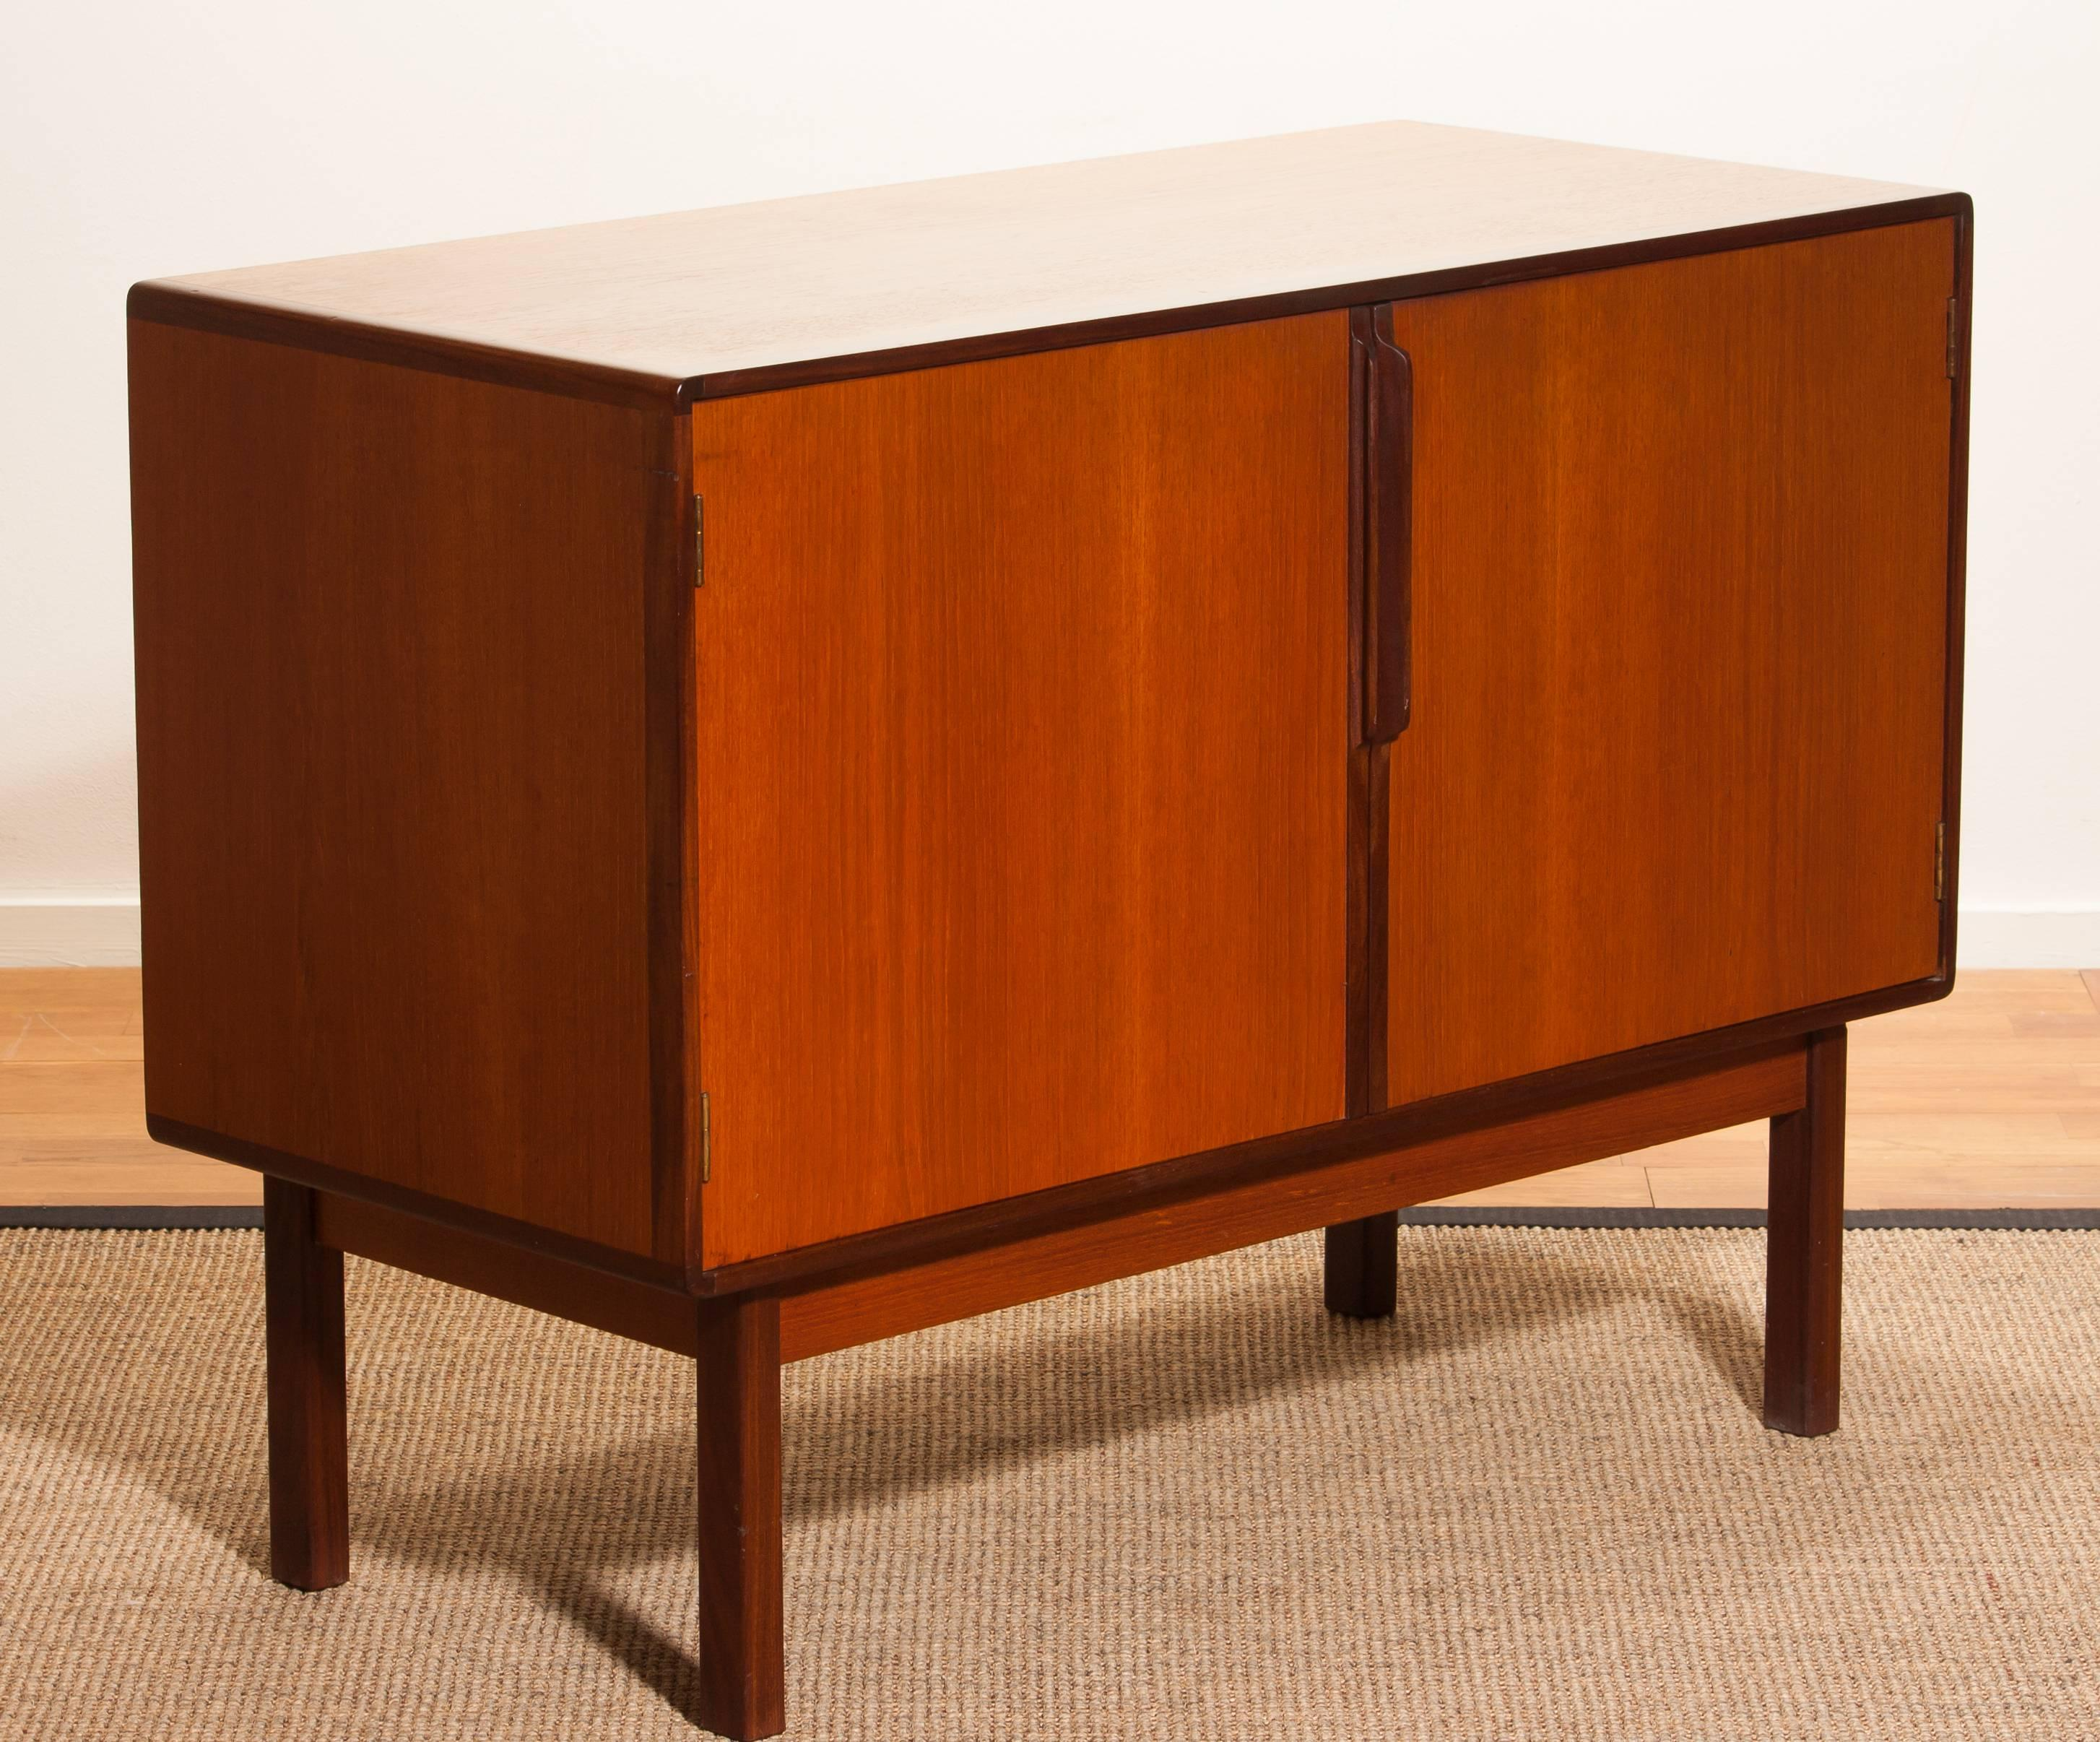 Genial Mid 20th Century 1960s, Teak And Palisander Small Sideboard Cabinet By Asko  Finland For